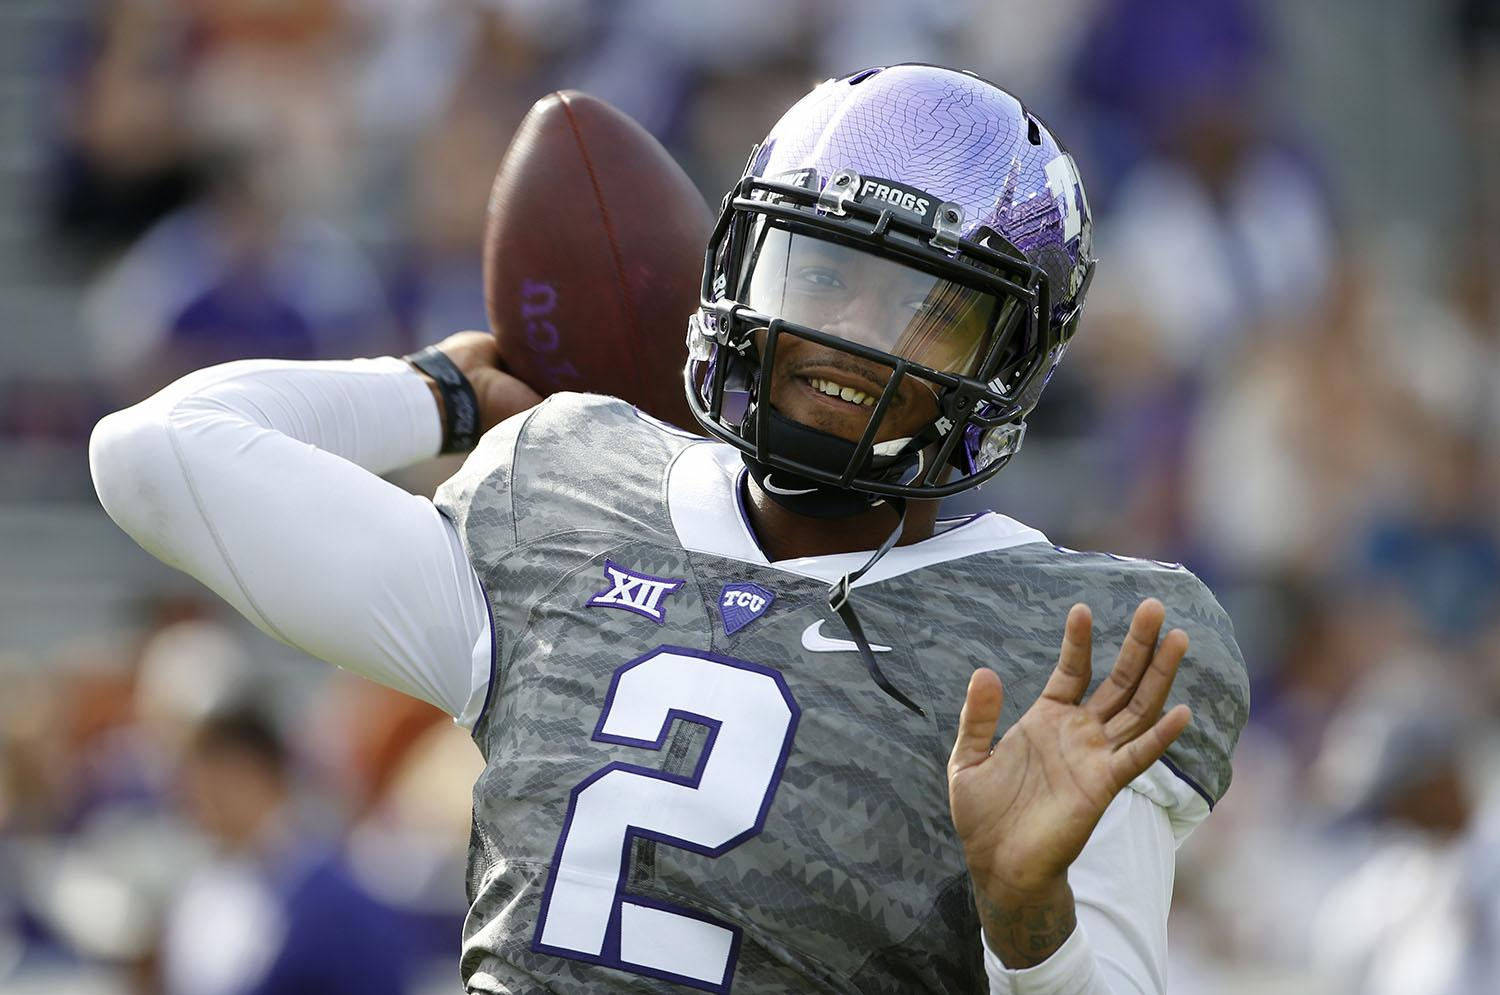 TCU quarterback Trevone Boykin (2) throws before the TCU Horned Frogs take on the Texas Longhorns in a NCAA football game Saturday, Oct. 2, 2015, in Fort Worth, Texas. (AP Photo/Ron Jenkins)